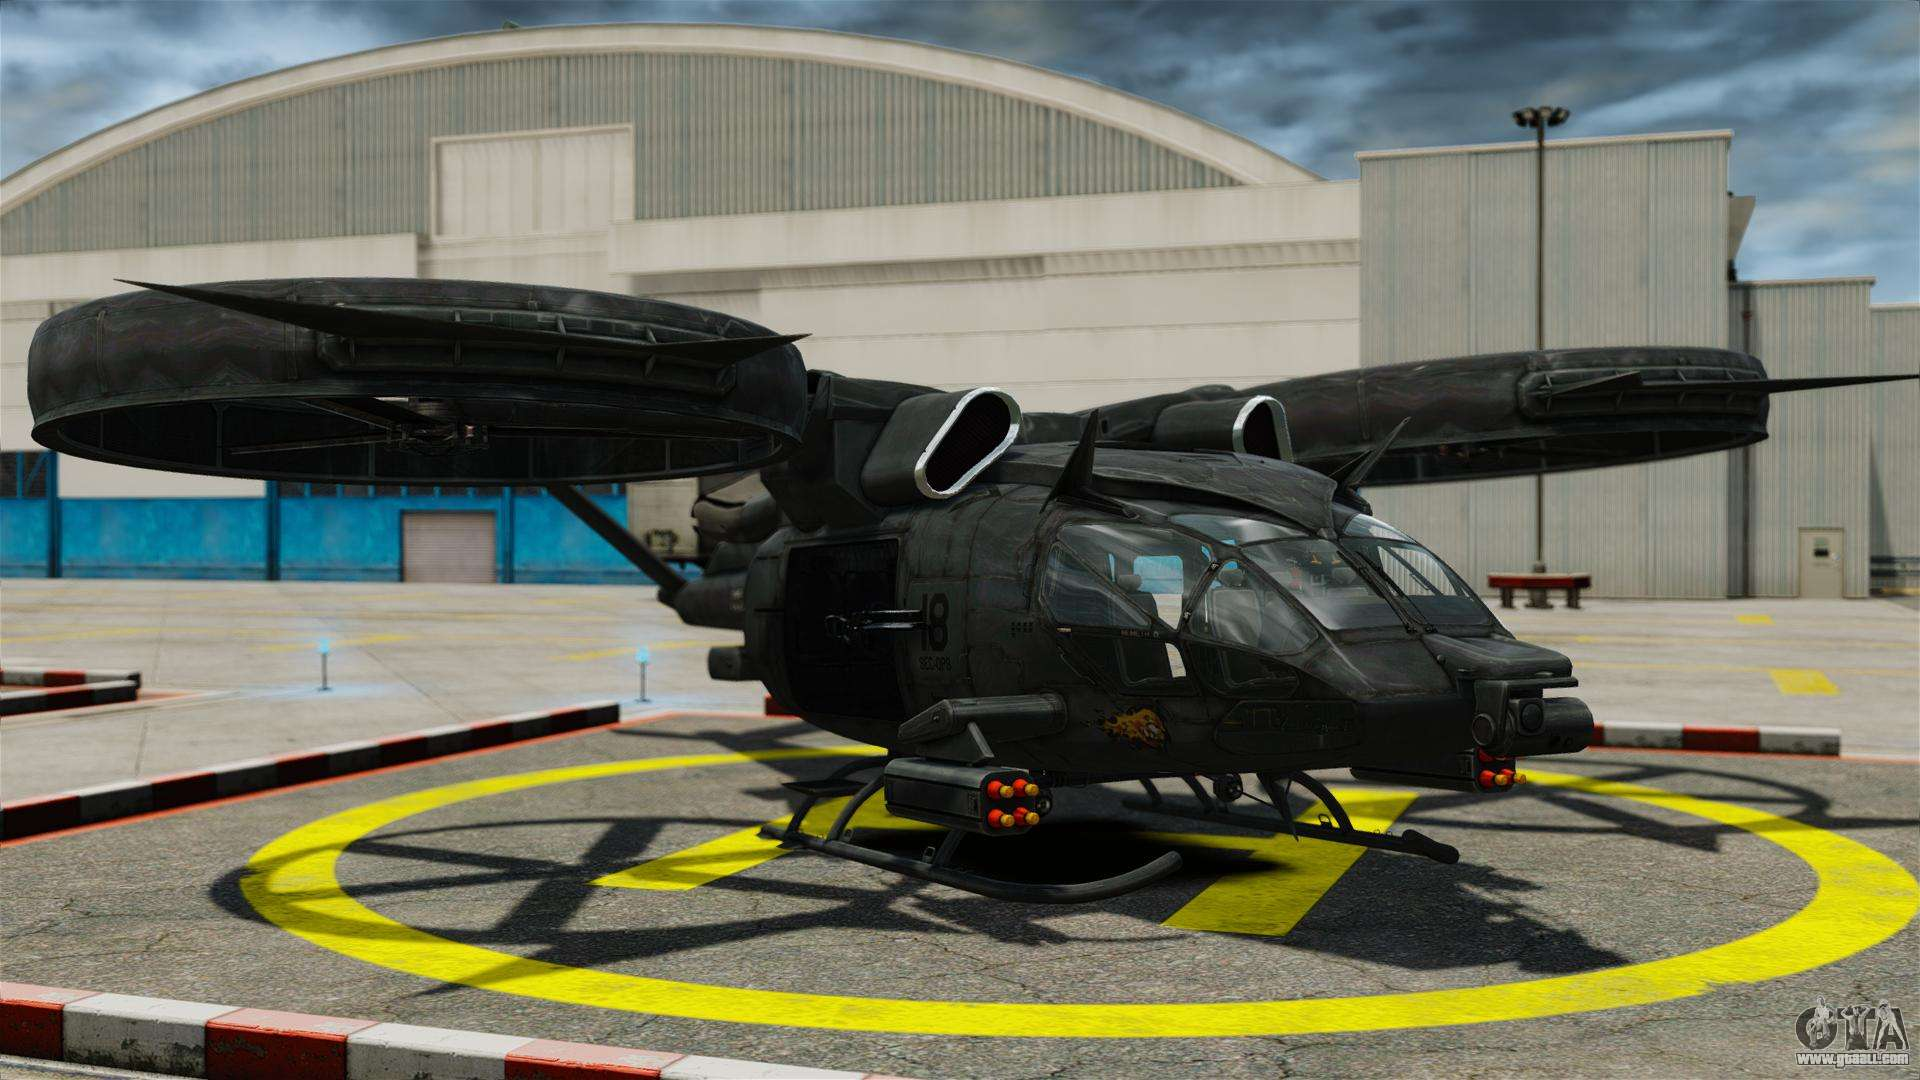 gta v helicopter cheat with 27061 Transportnyy Vertolet Sa 2 Samson on GTAVcodes in addition Details besides Gta Vice City Map further Watch besides 32812 Gta V Atlas Map.